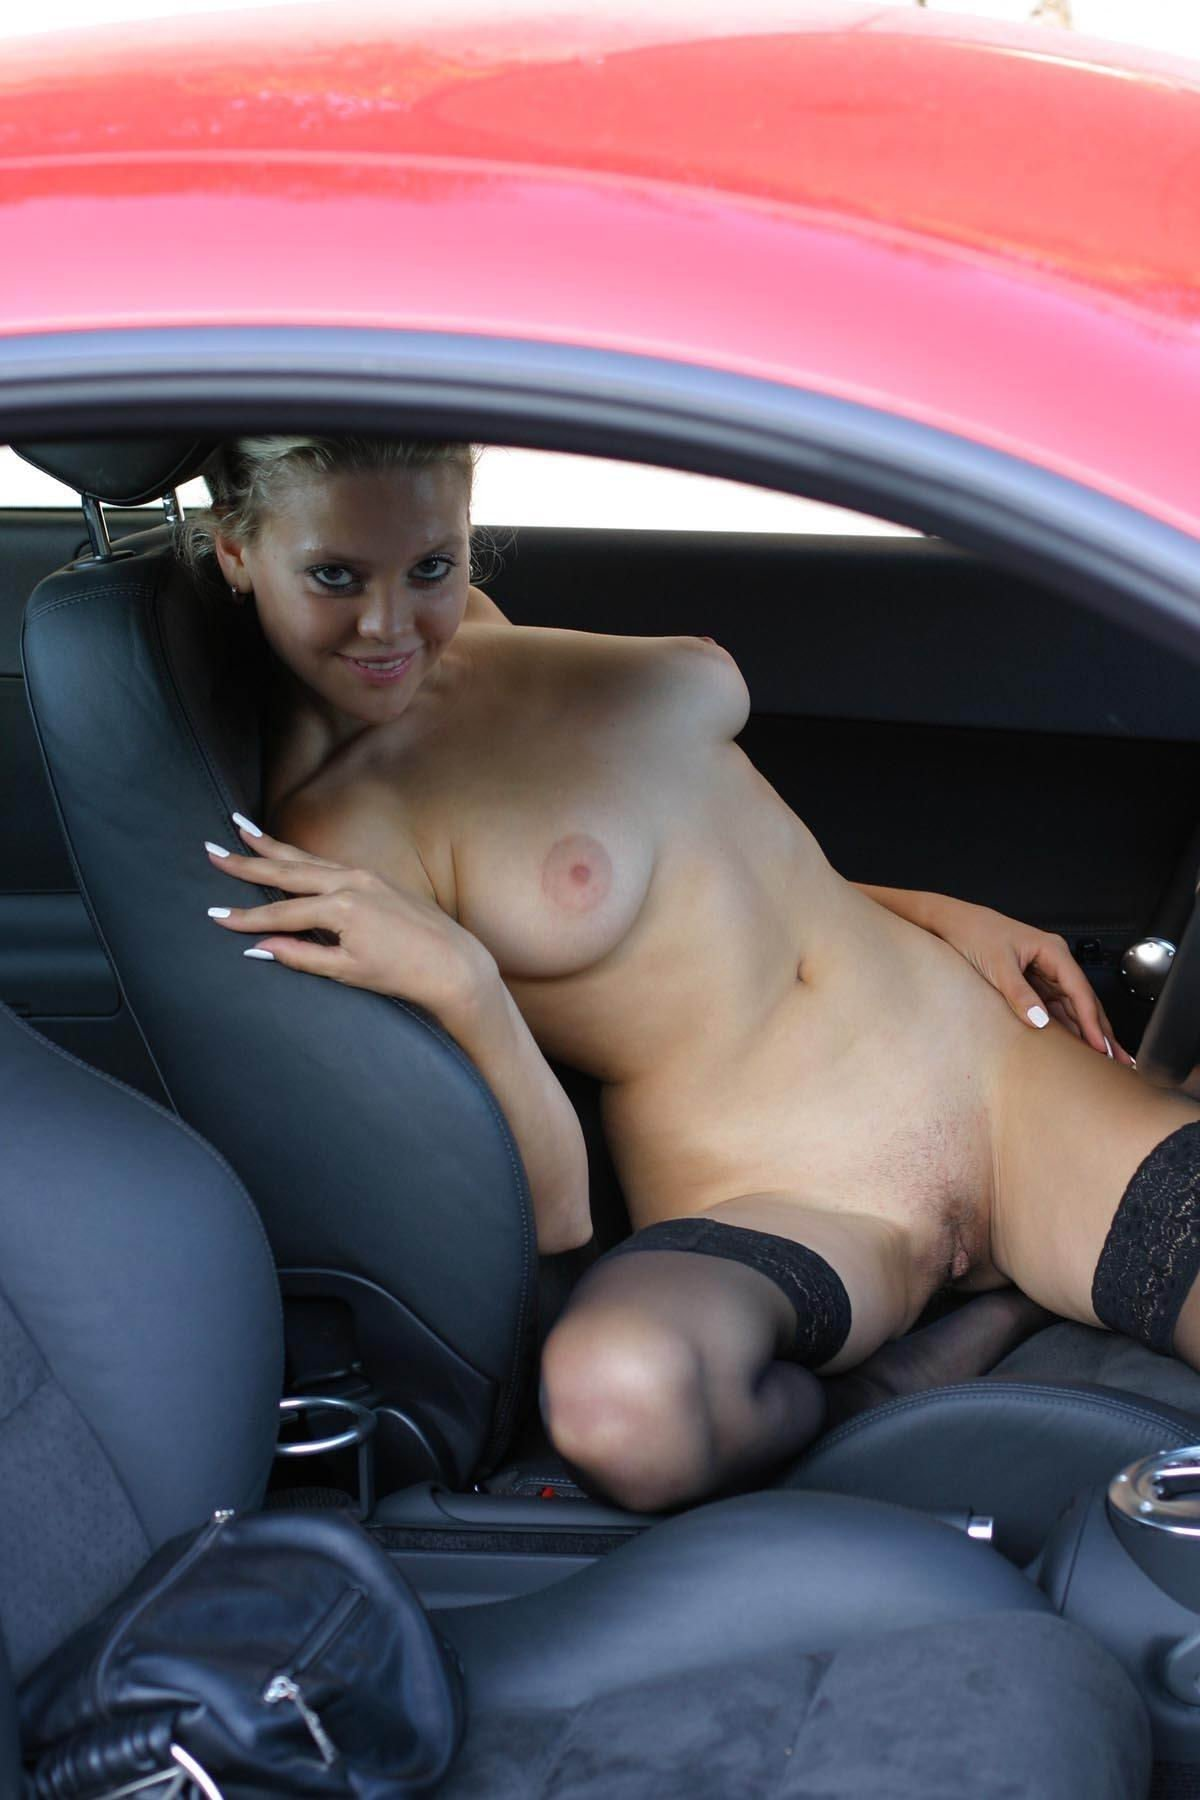 Me And A Str8 Boy In My New Car At The Park Stroking It